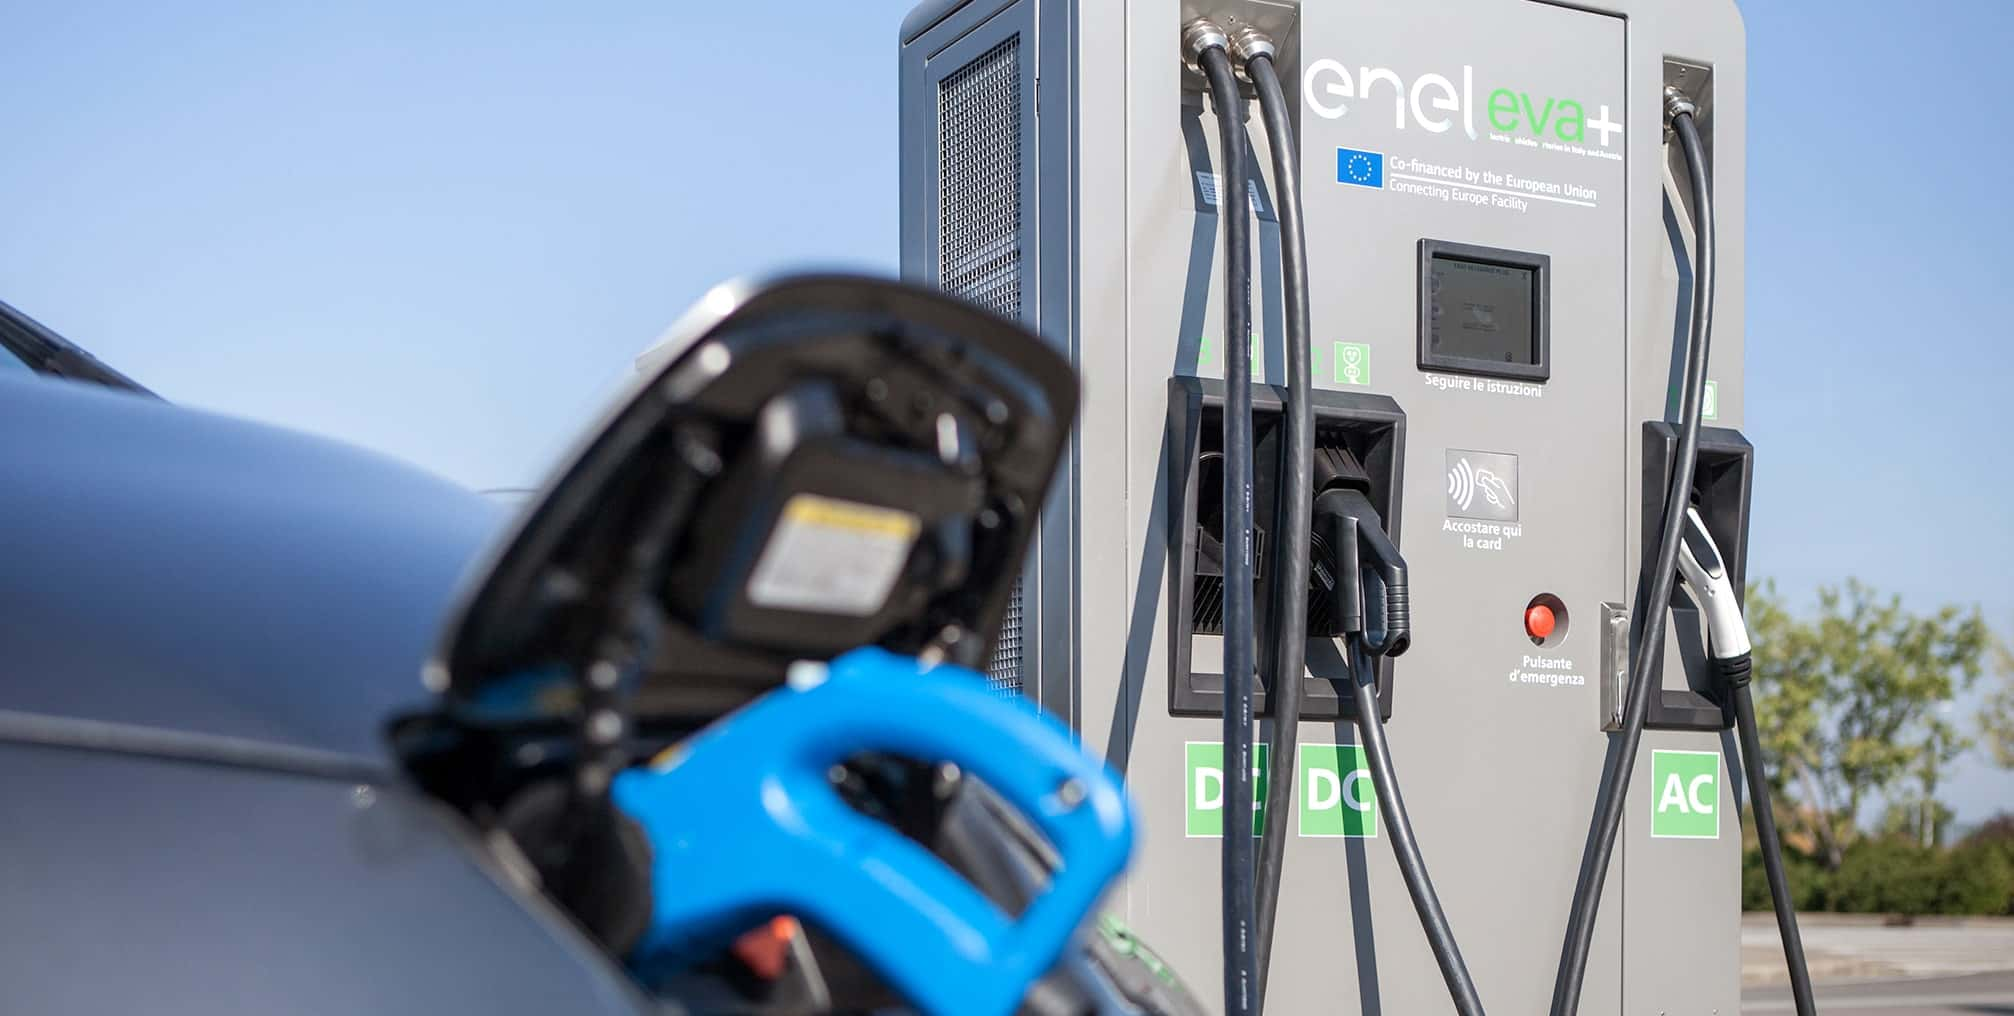 The National Plan for the installation of EV charging